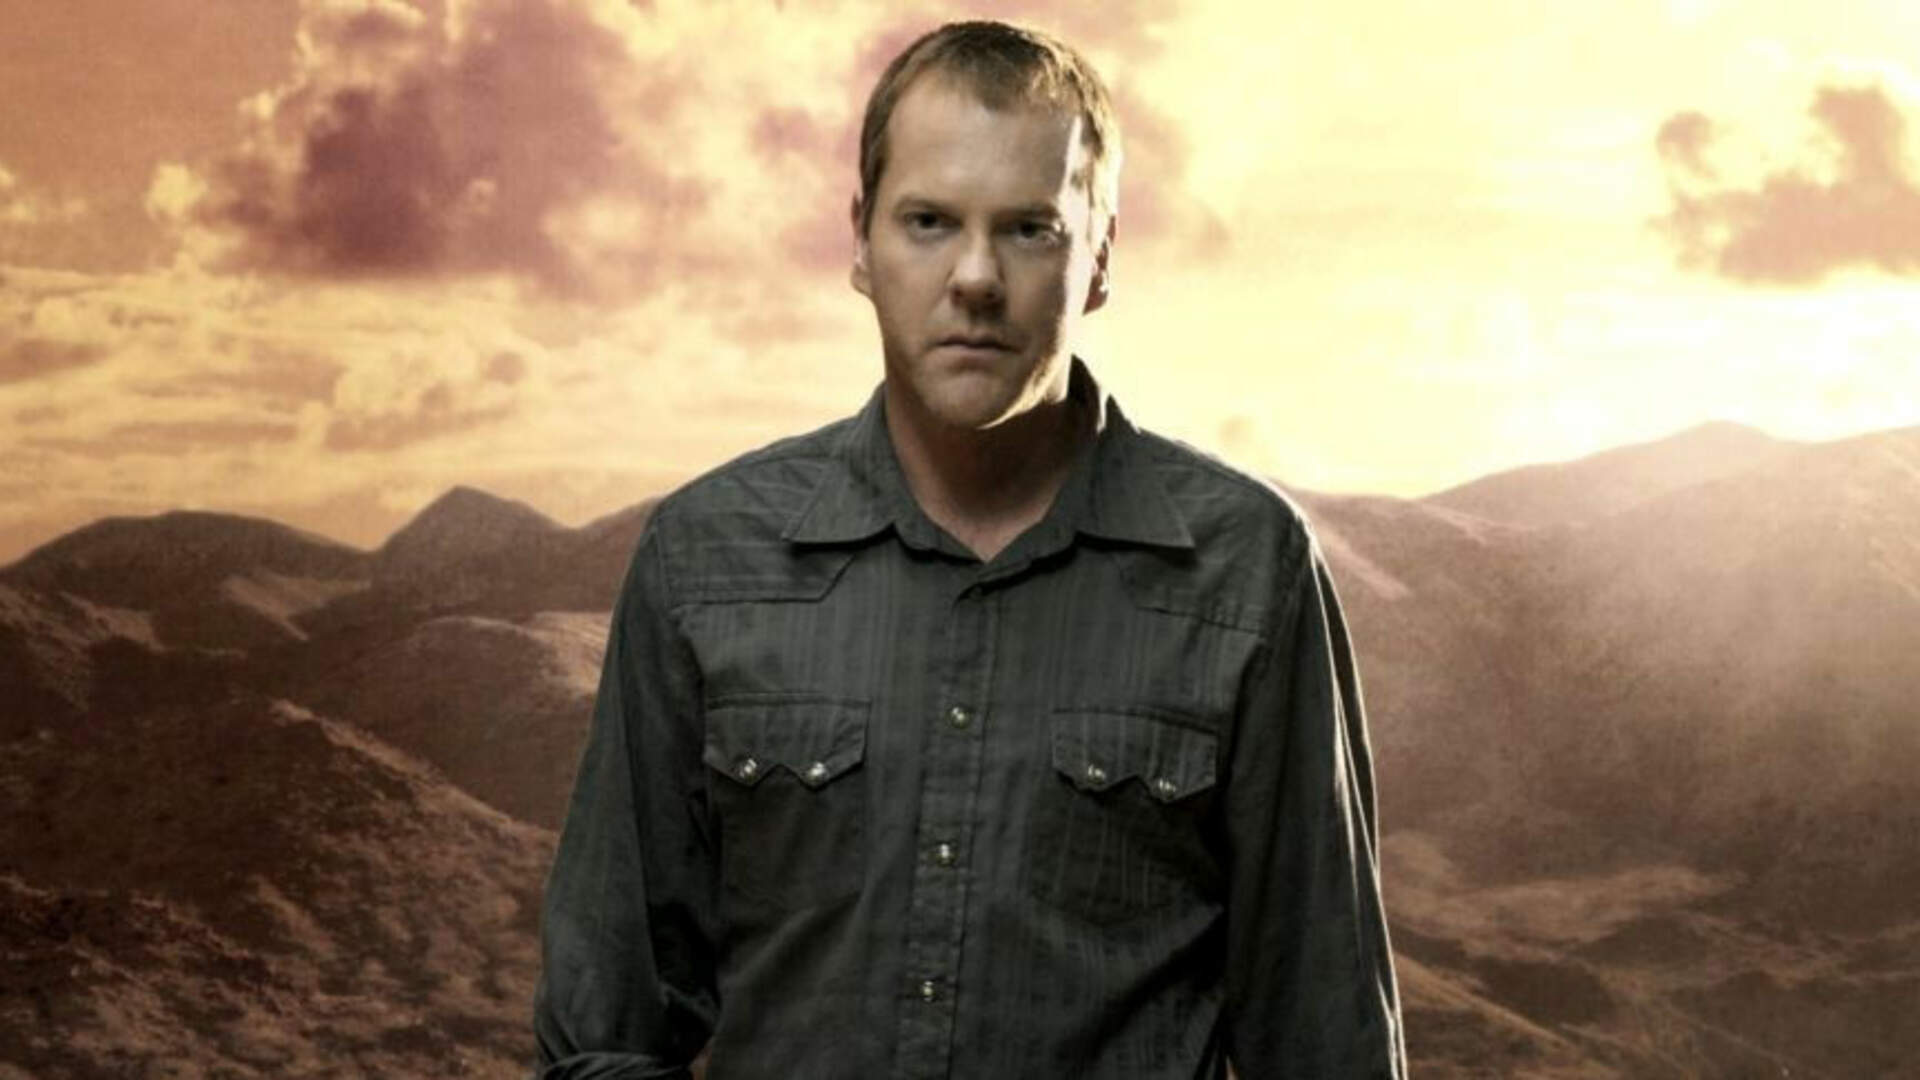 Kiefer Sutherland Appearing in New Mortal Kombat